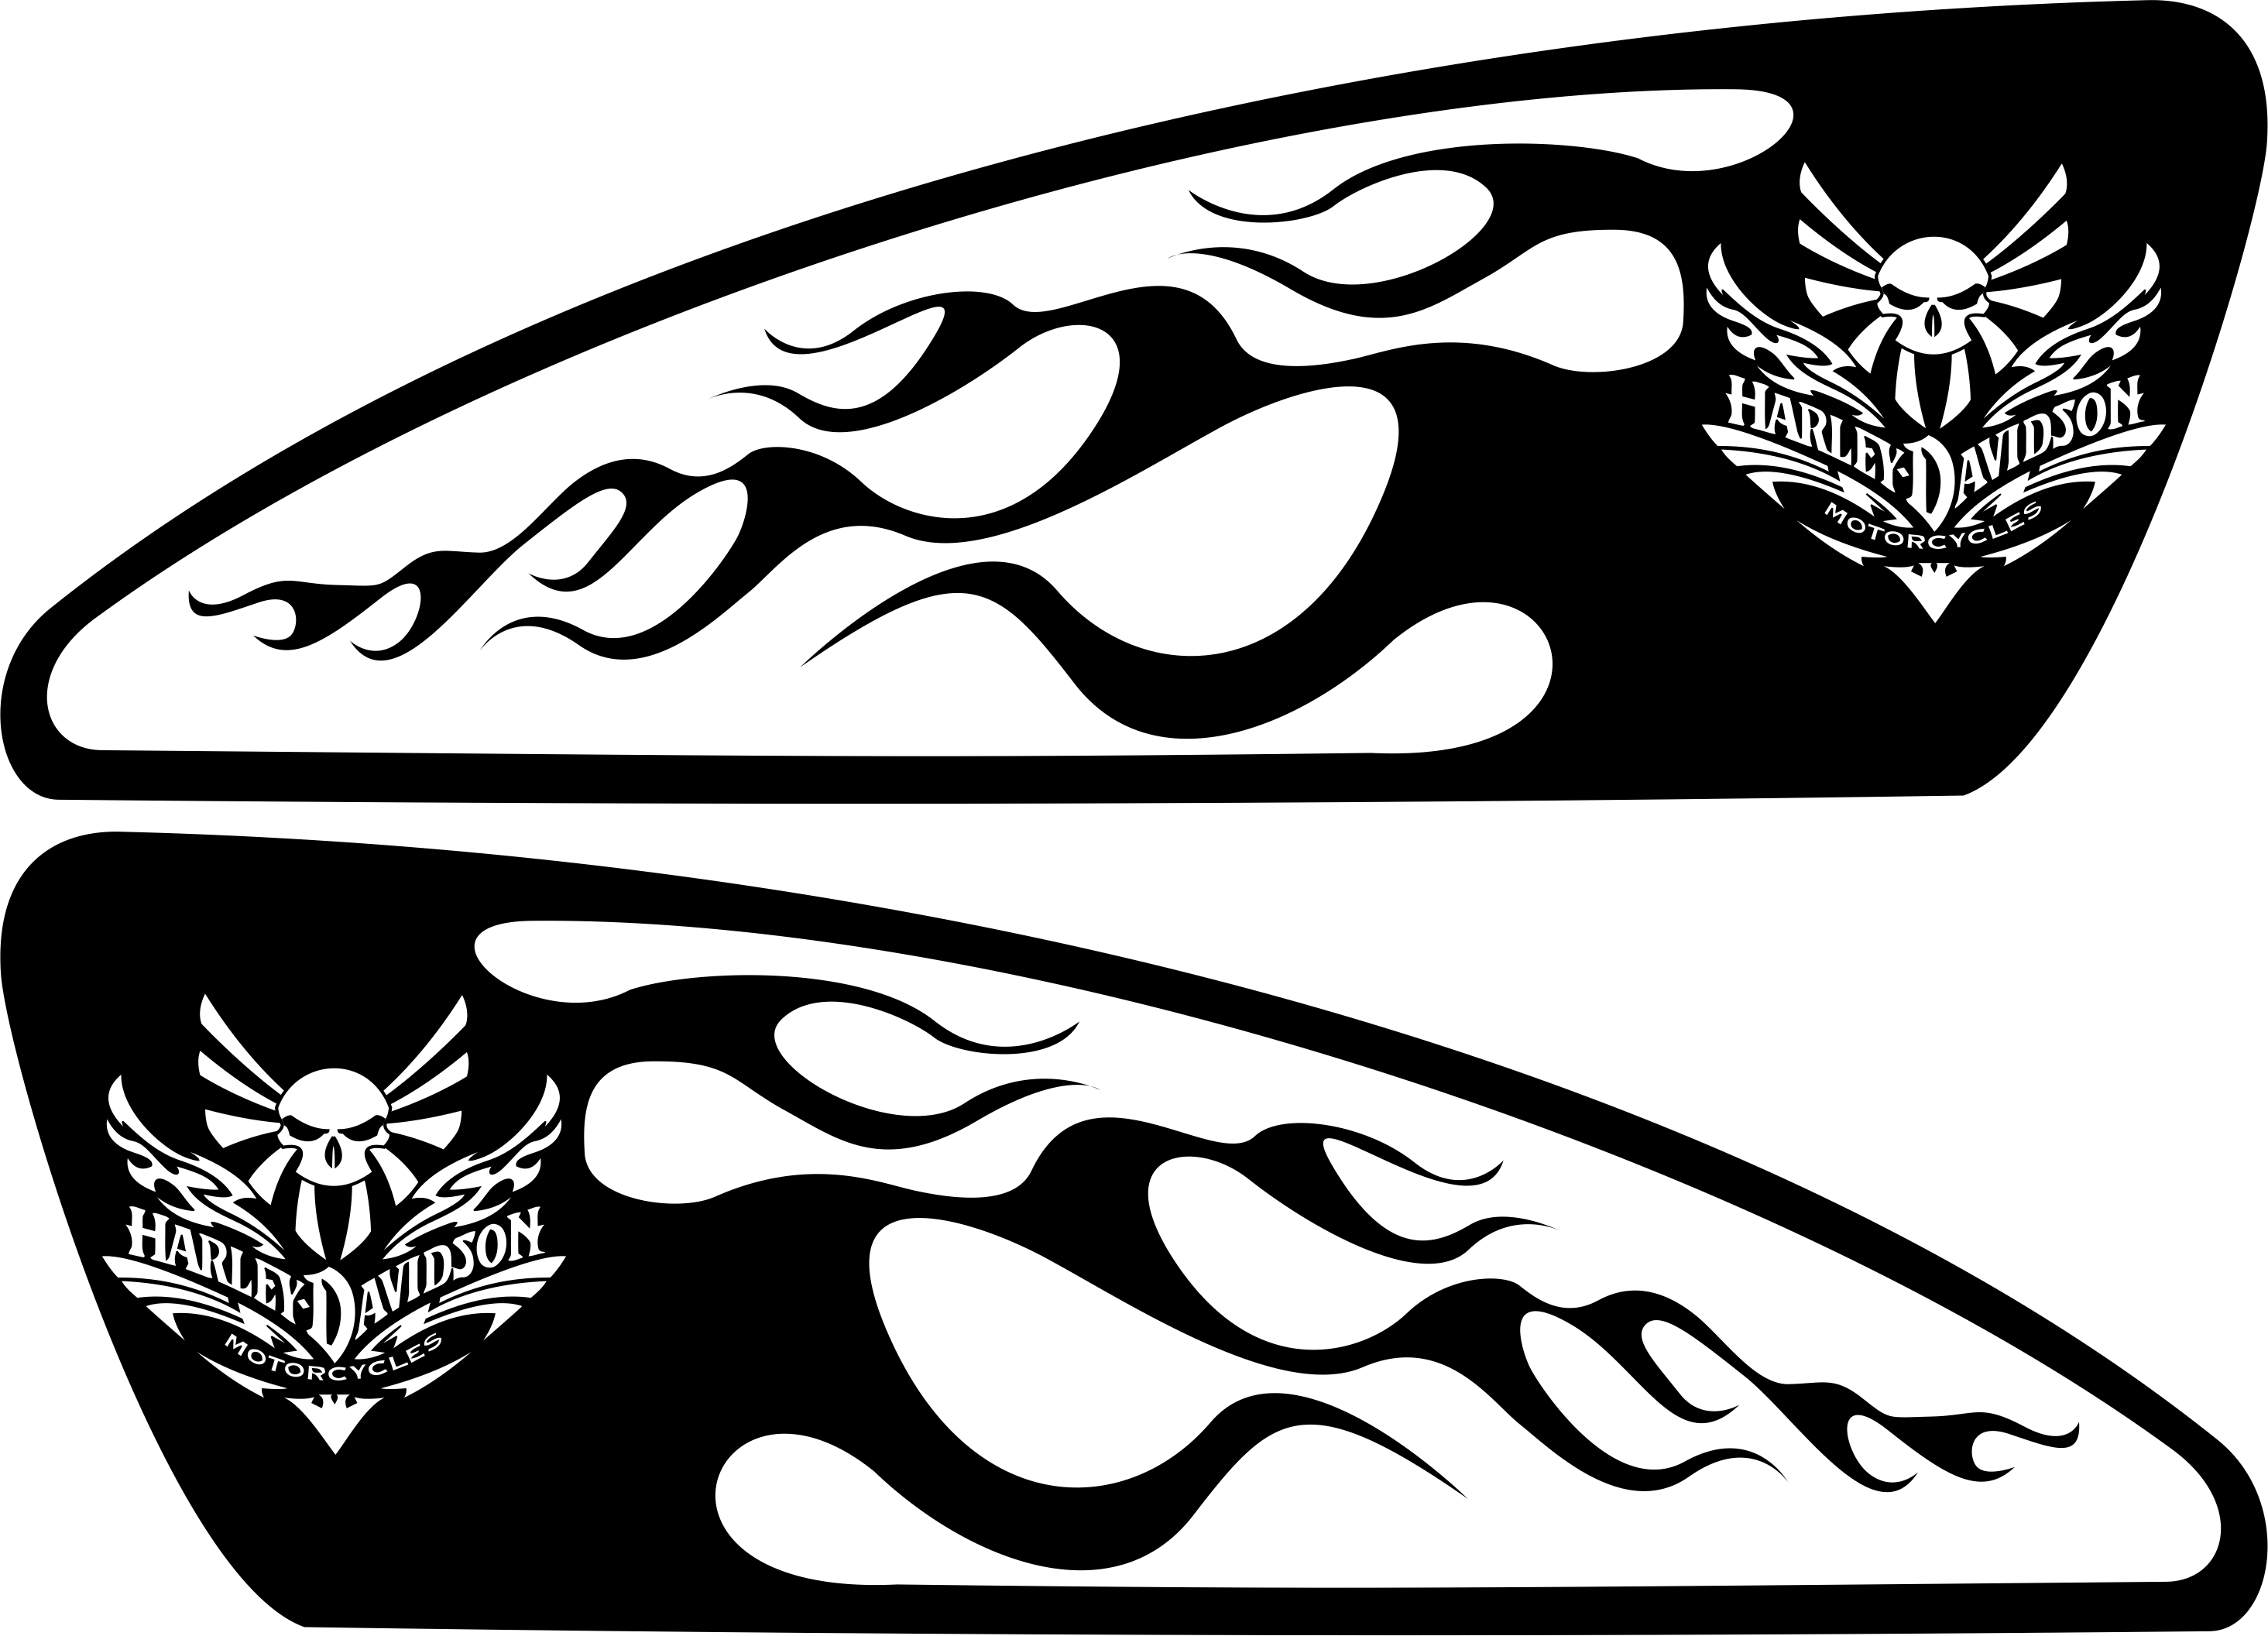 Harley Decals Airbrush Gas Tank Stencils Vinyl Harley Decals - Vinyl stickers for motorcyclesmotorcycle graphics motorcycle stickers motorcycle decals